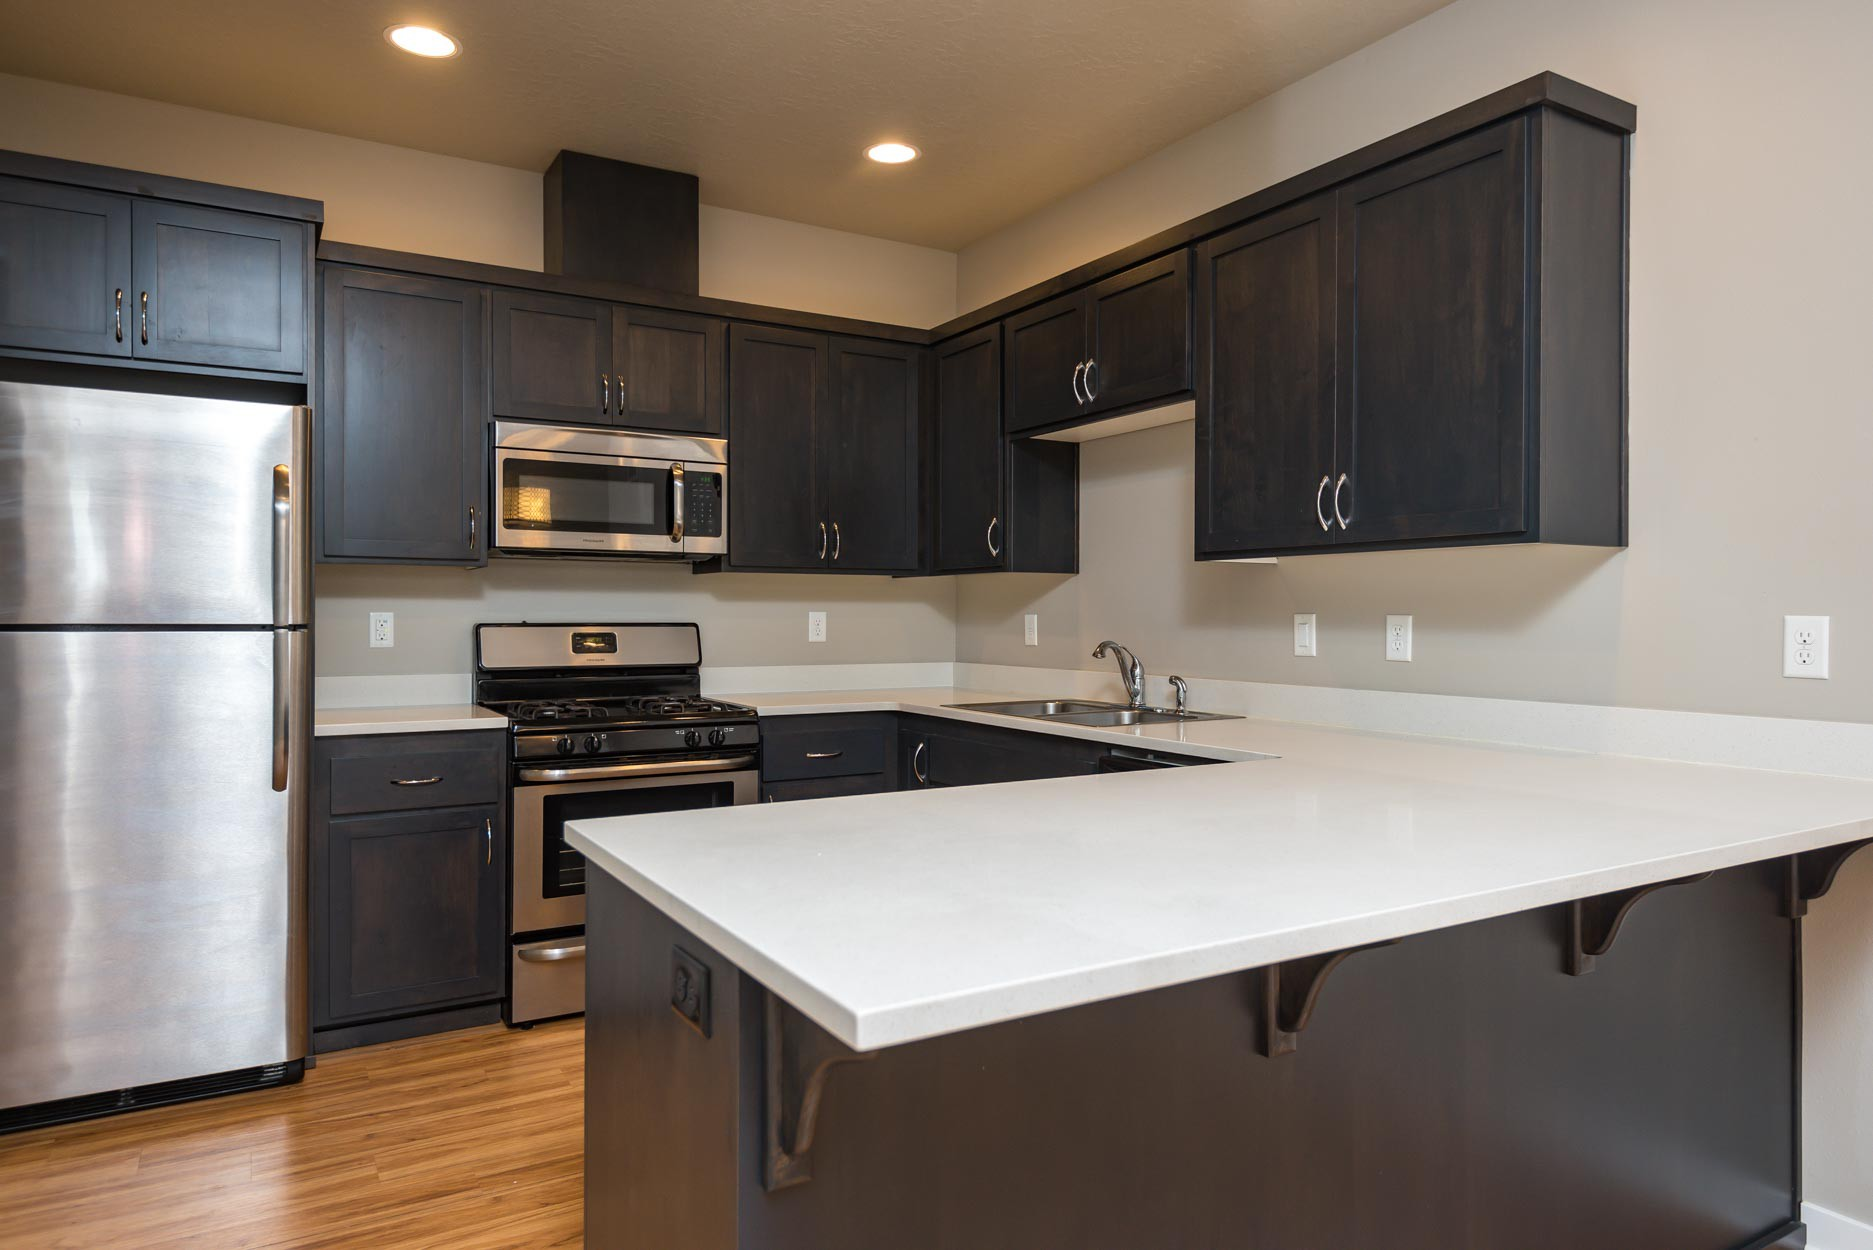 Apartments Near LBCC Northside Townhomes for Linn-Benton Community College Students in Albany, OR